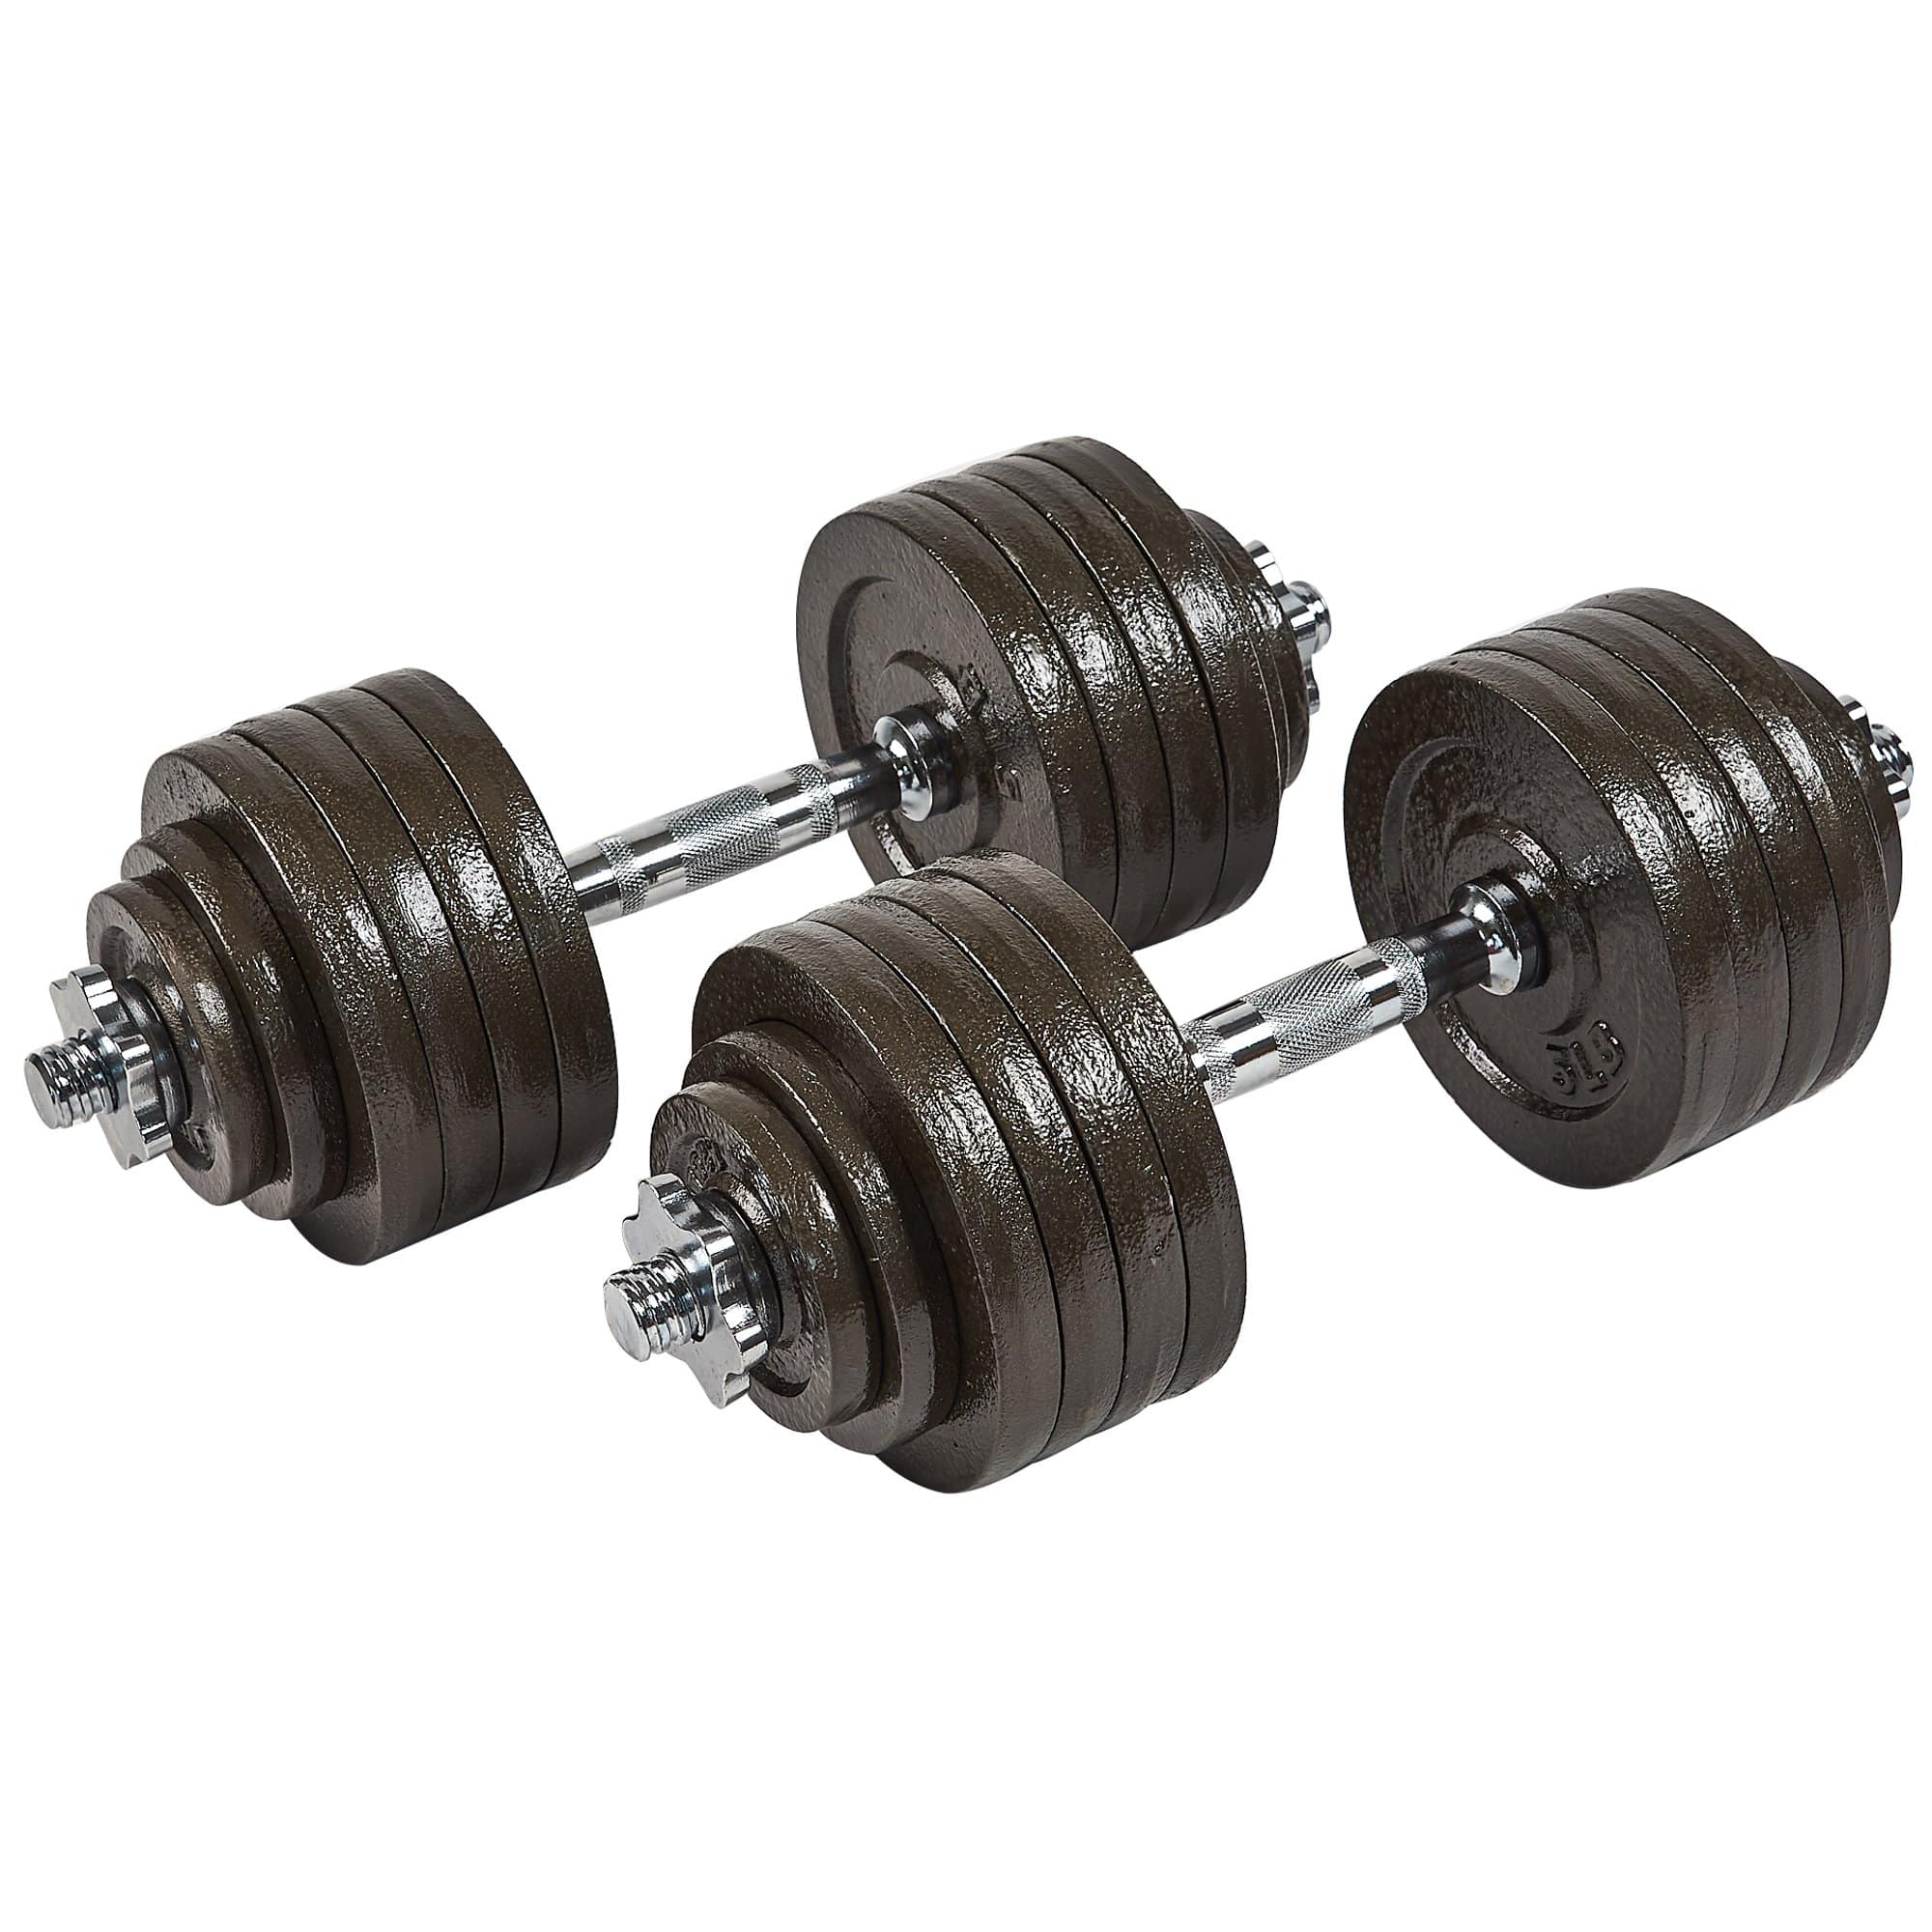 Everyday Essentials Contoured Handle Cast Iron Adjustable Dumbbell Weight Set, 52.5 lbs Pair for $179.99. Free shipping